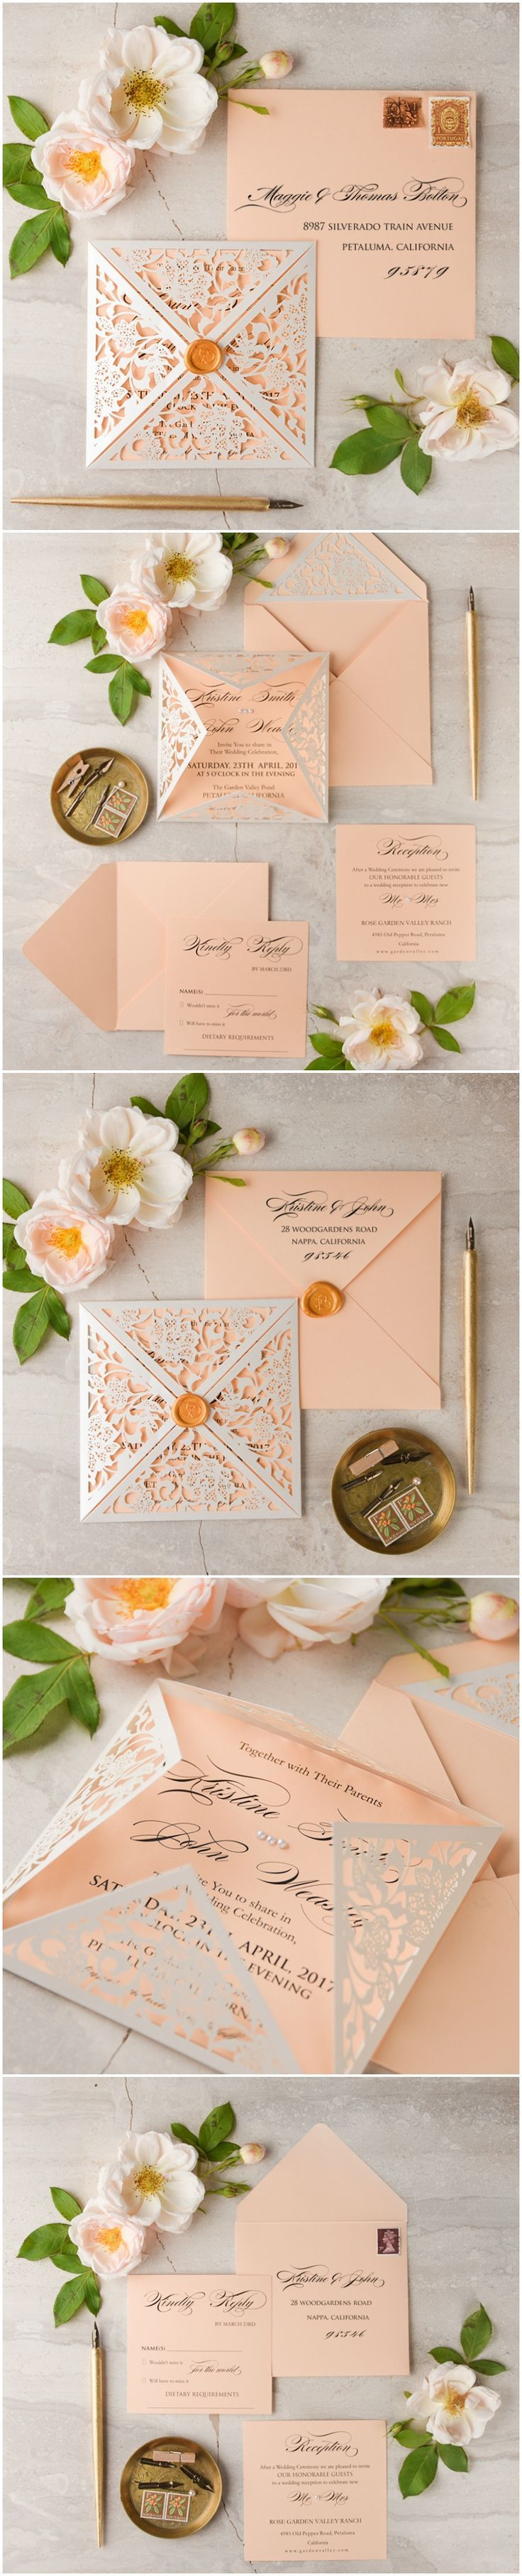 letterpress wedding invites london%0A Peach Laser cut Wedding Invitation  calligraphy printing  wax stamping   peach  blush